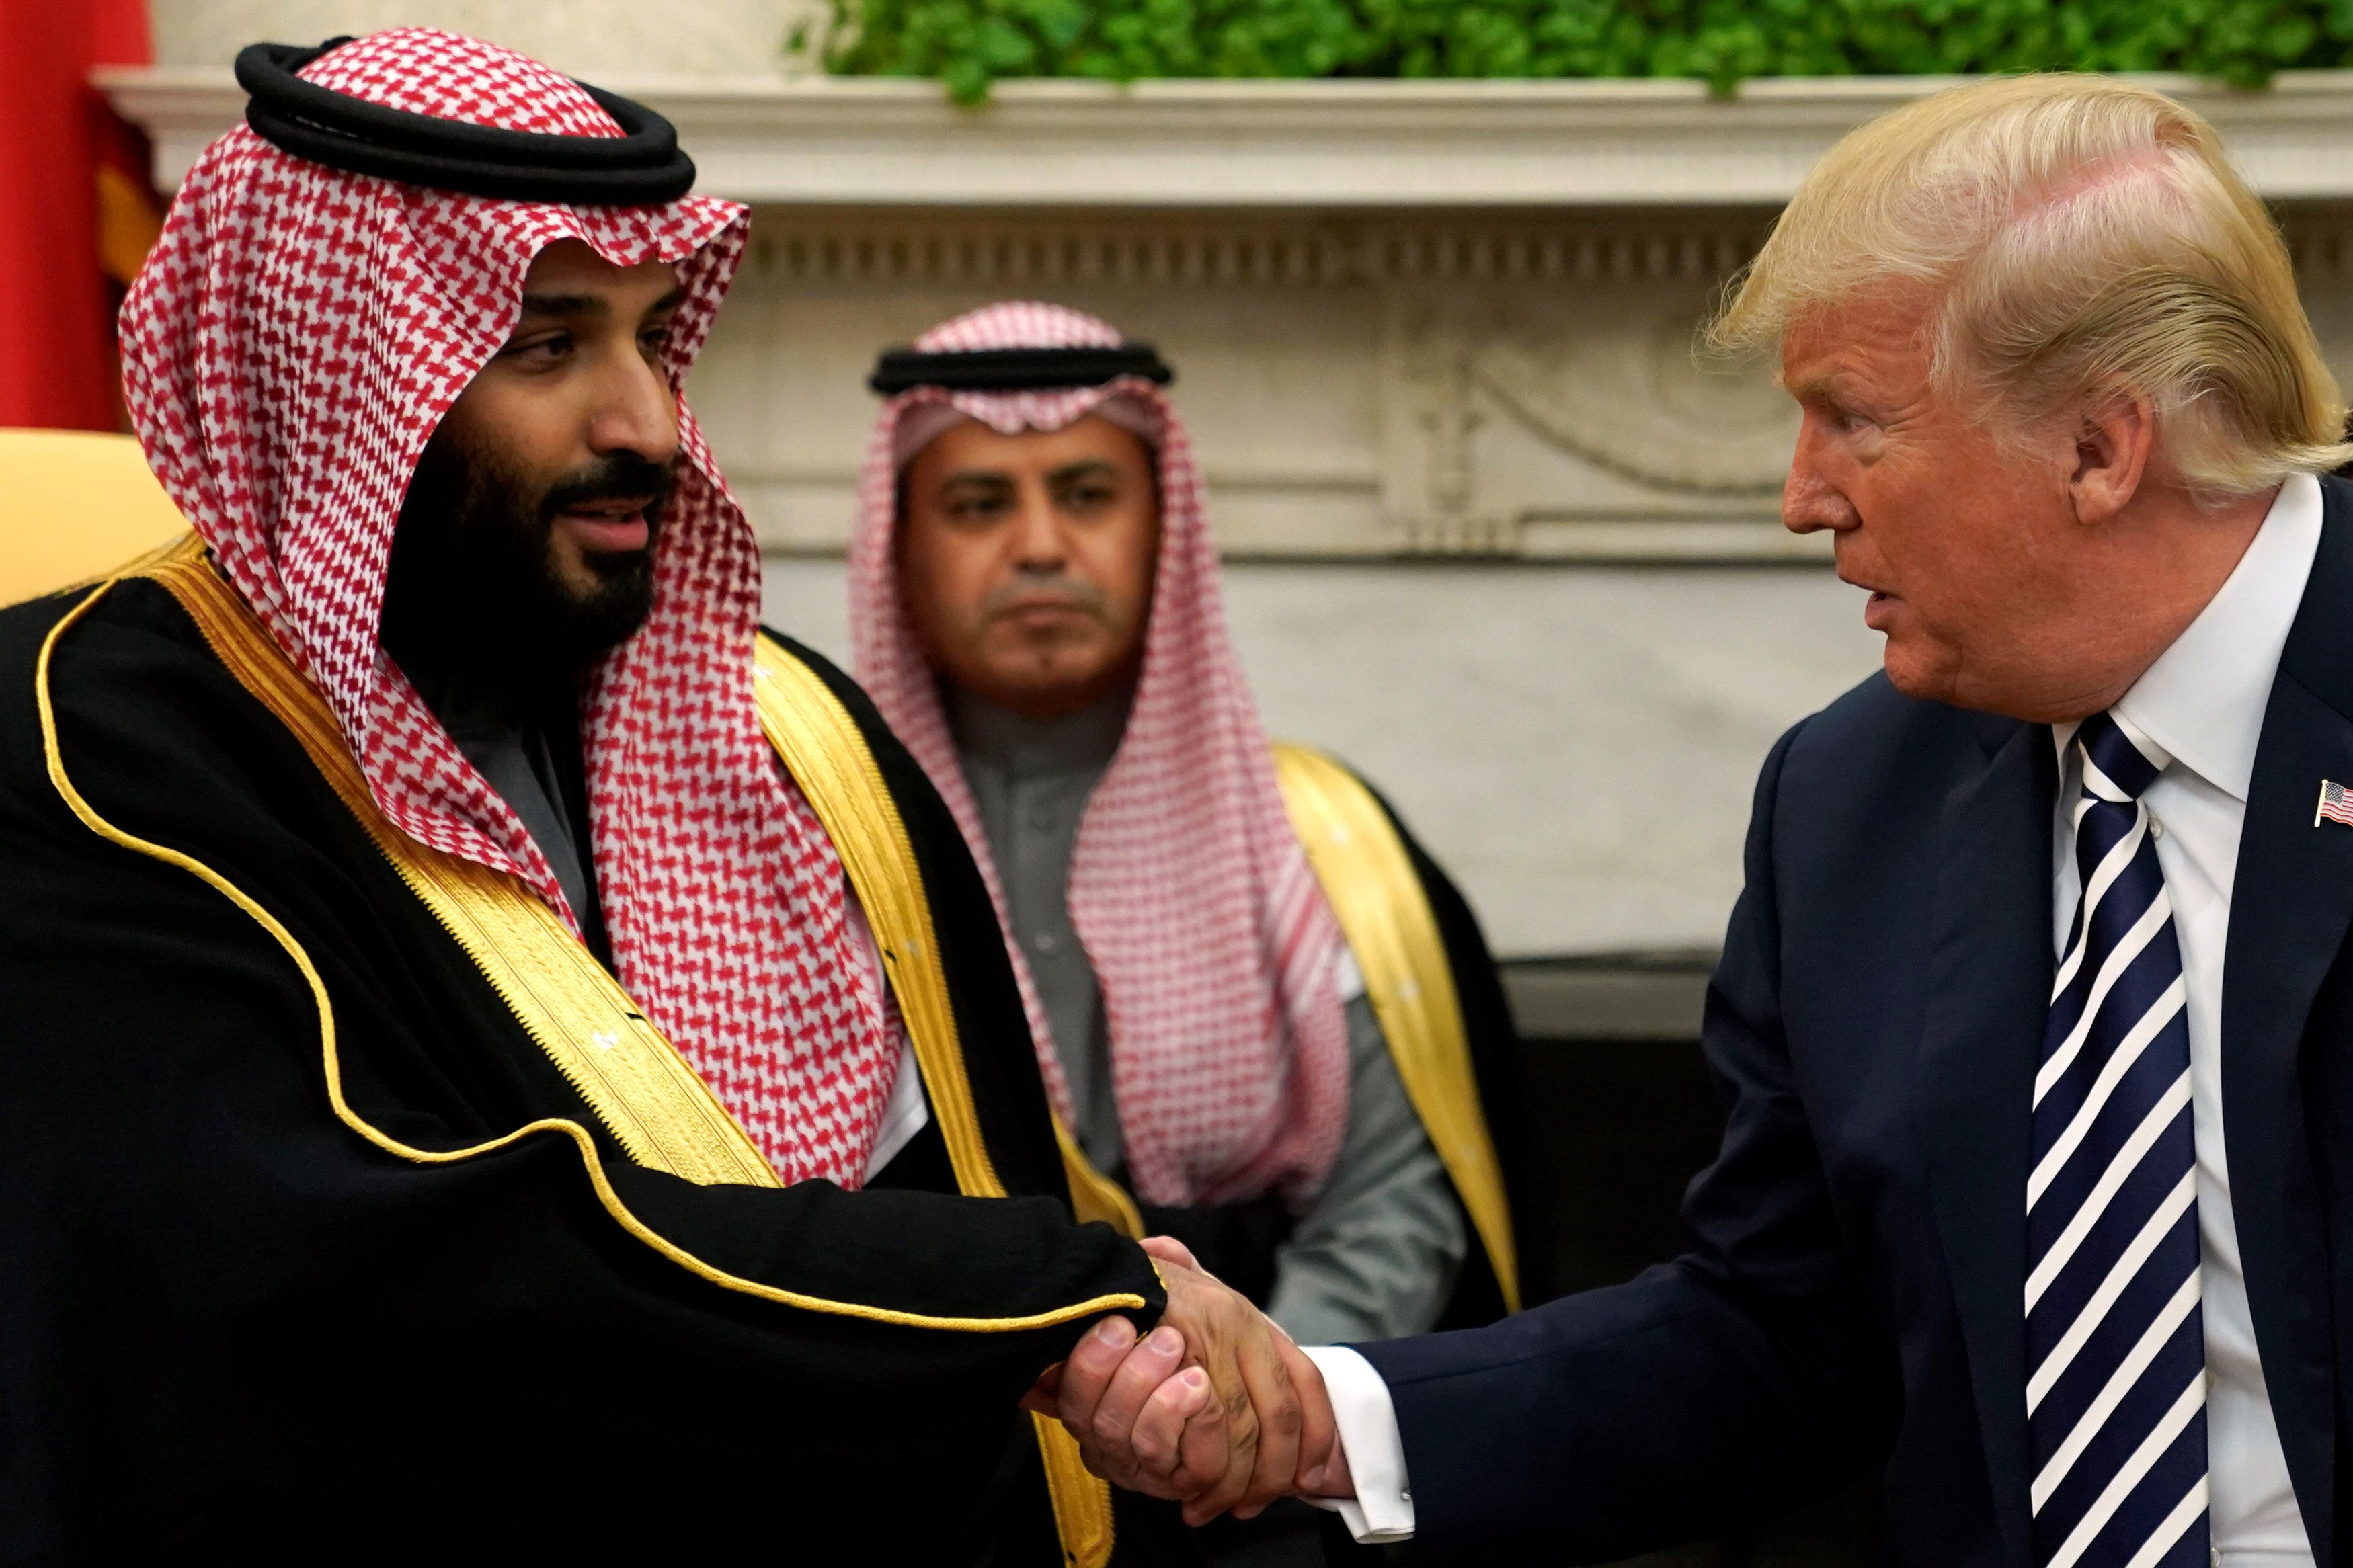 Saudi Arabia's Crown Prince Mohammed bin Salman meets with U.S. President Donald Trump at the White House on March 20.